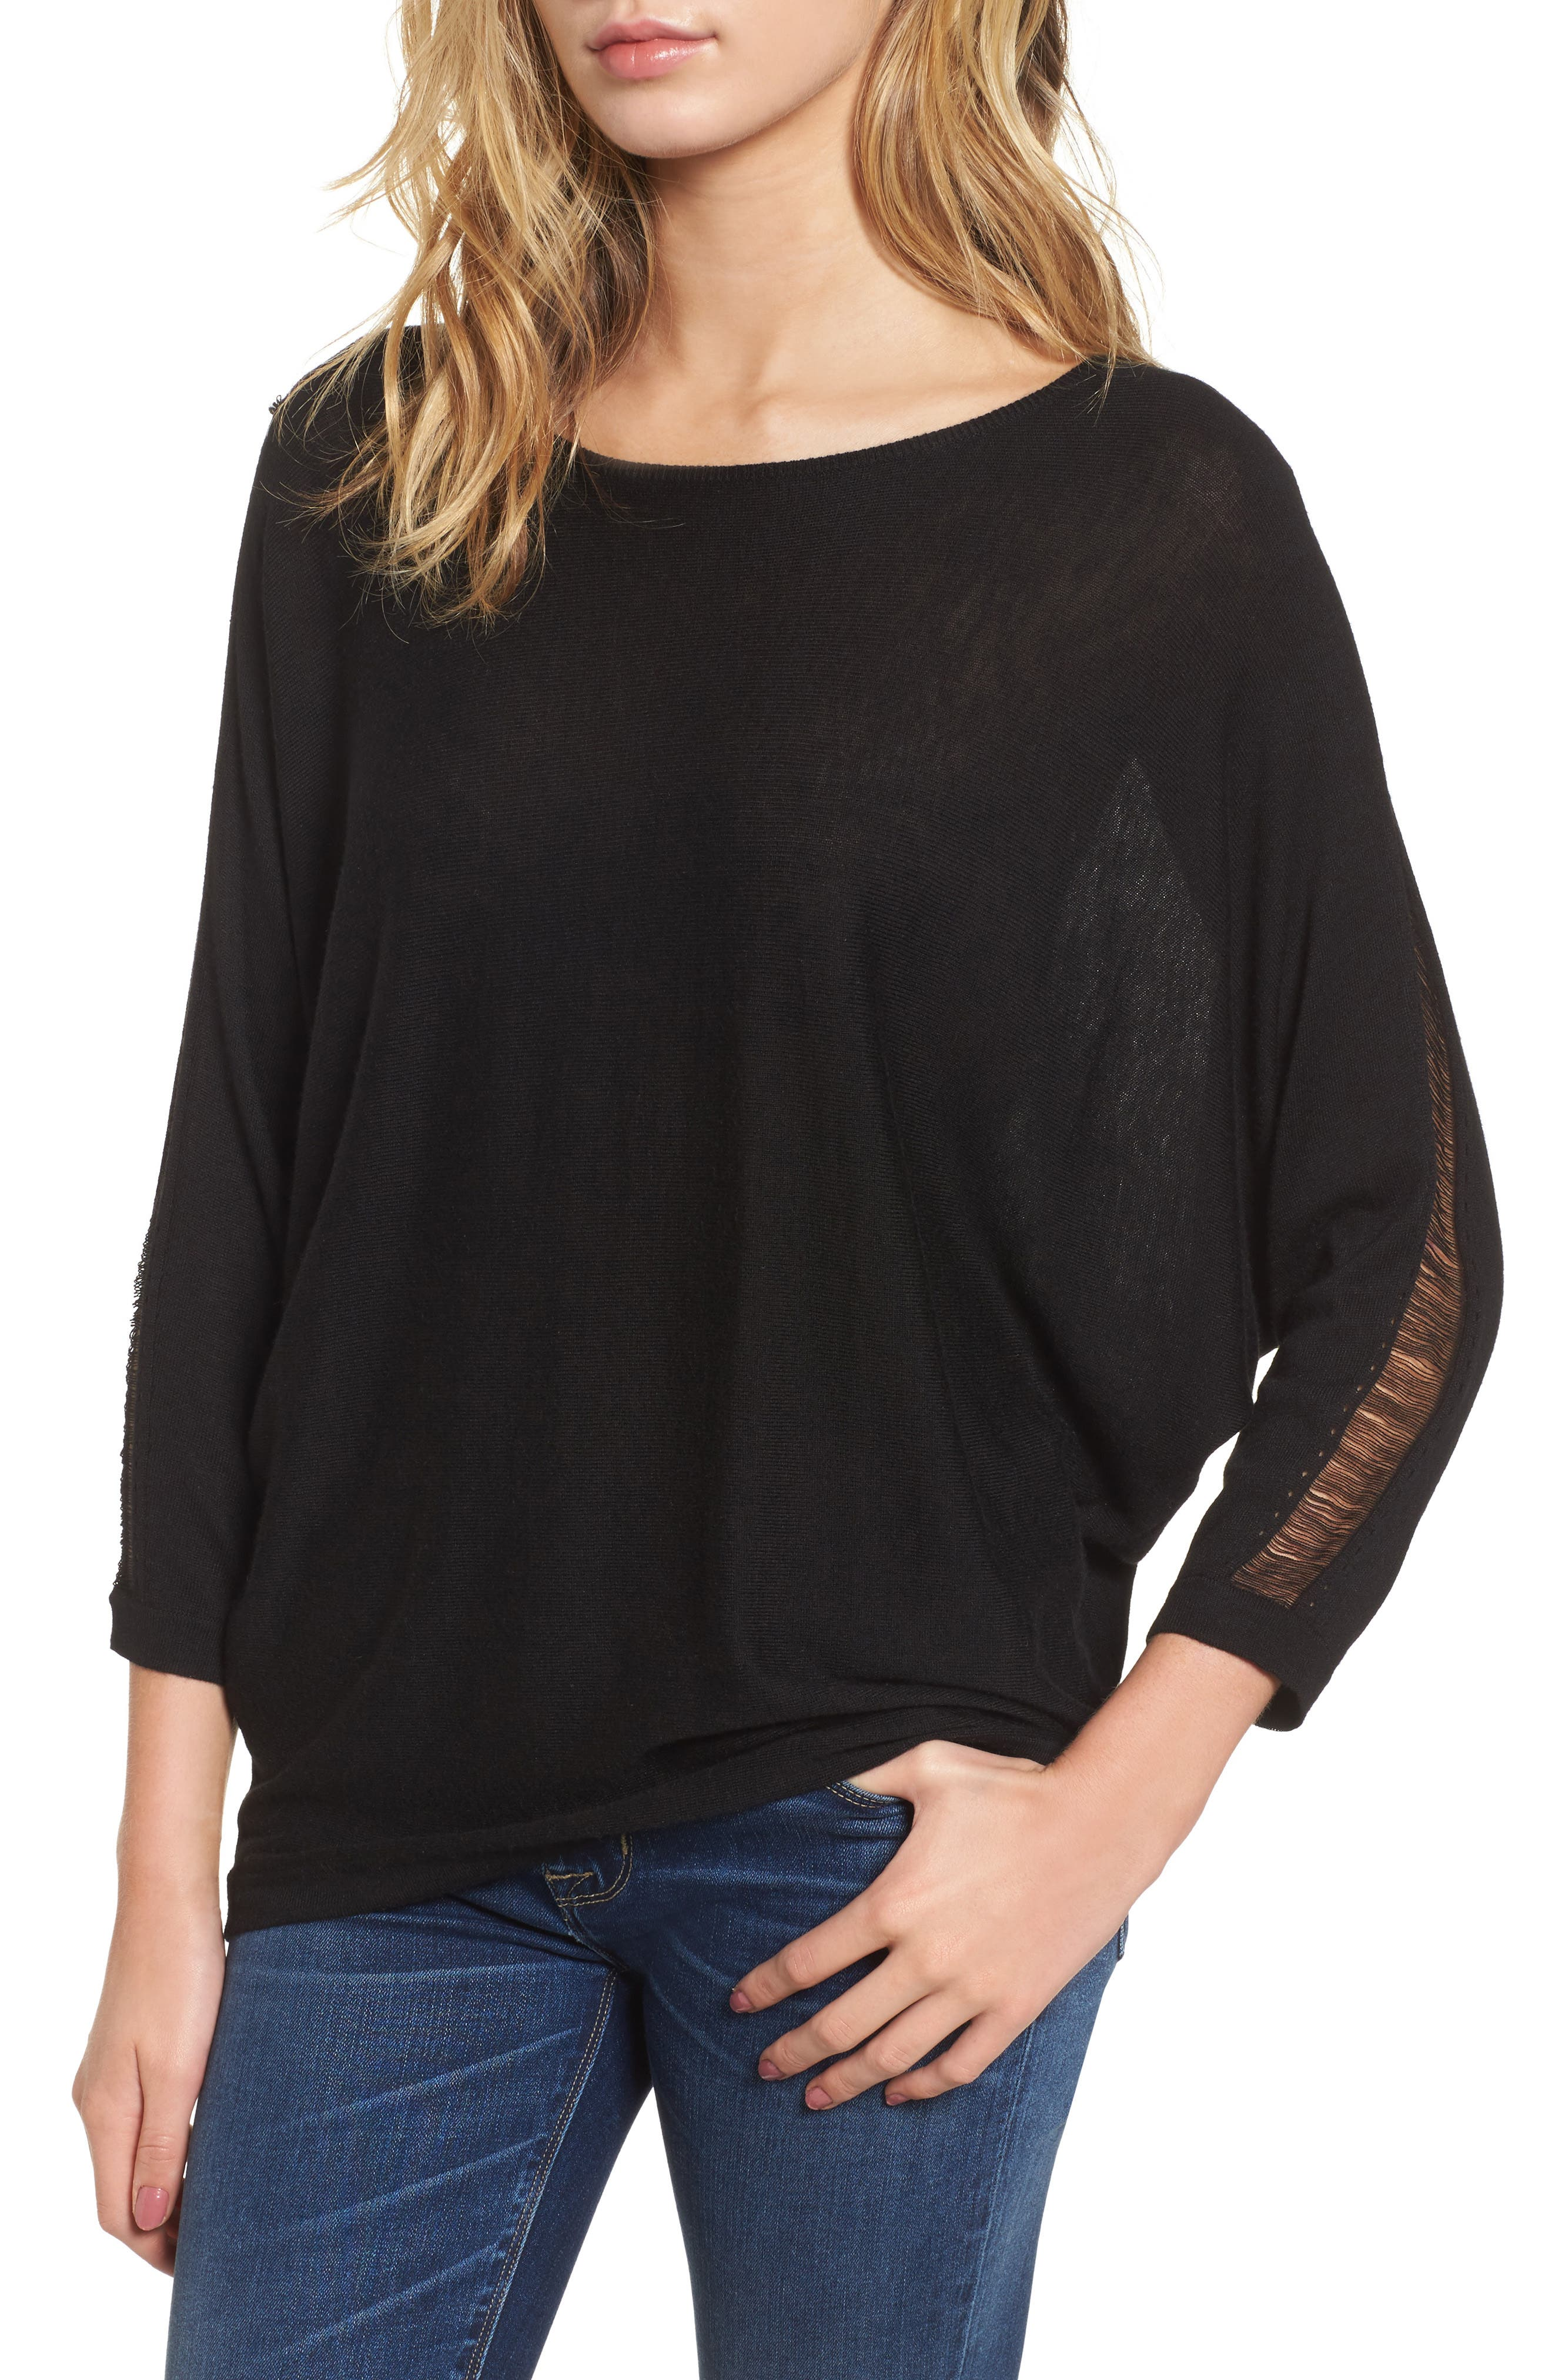 Whitlock Sweater,                         Main,                         color, Black